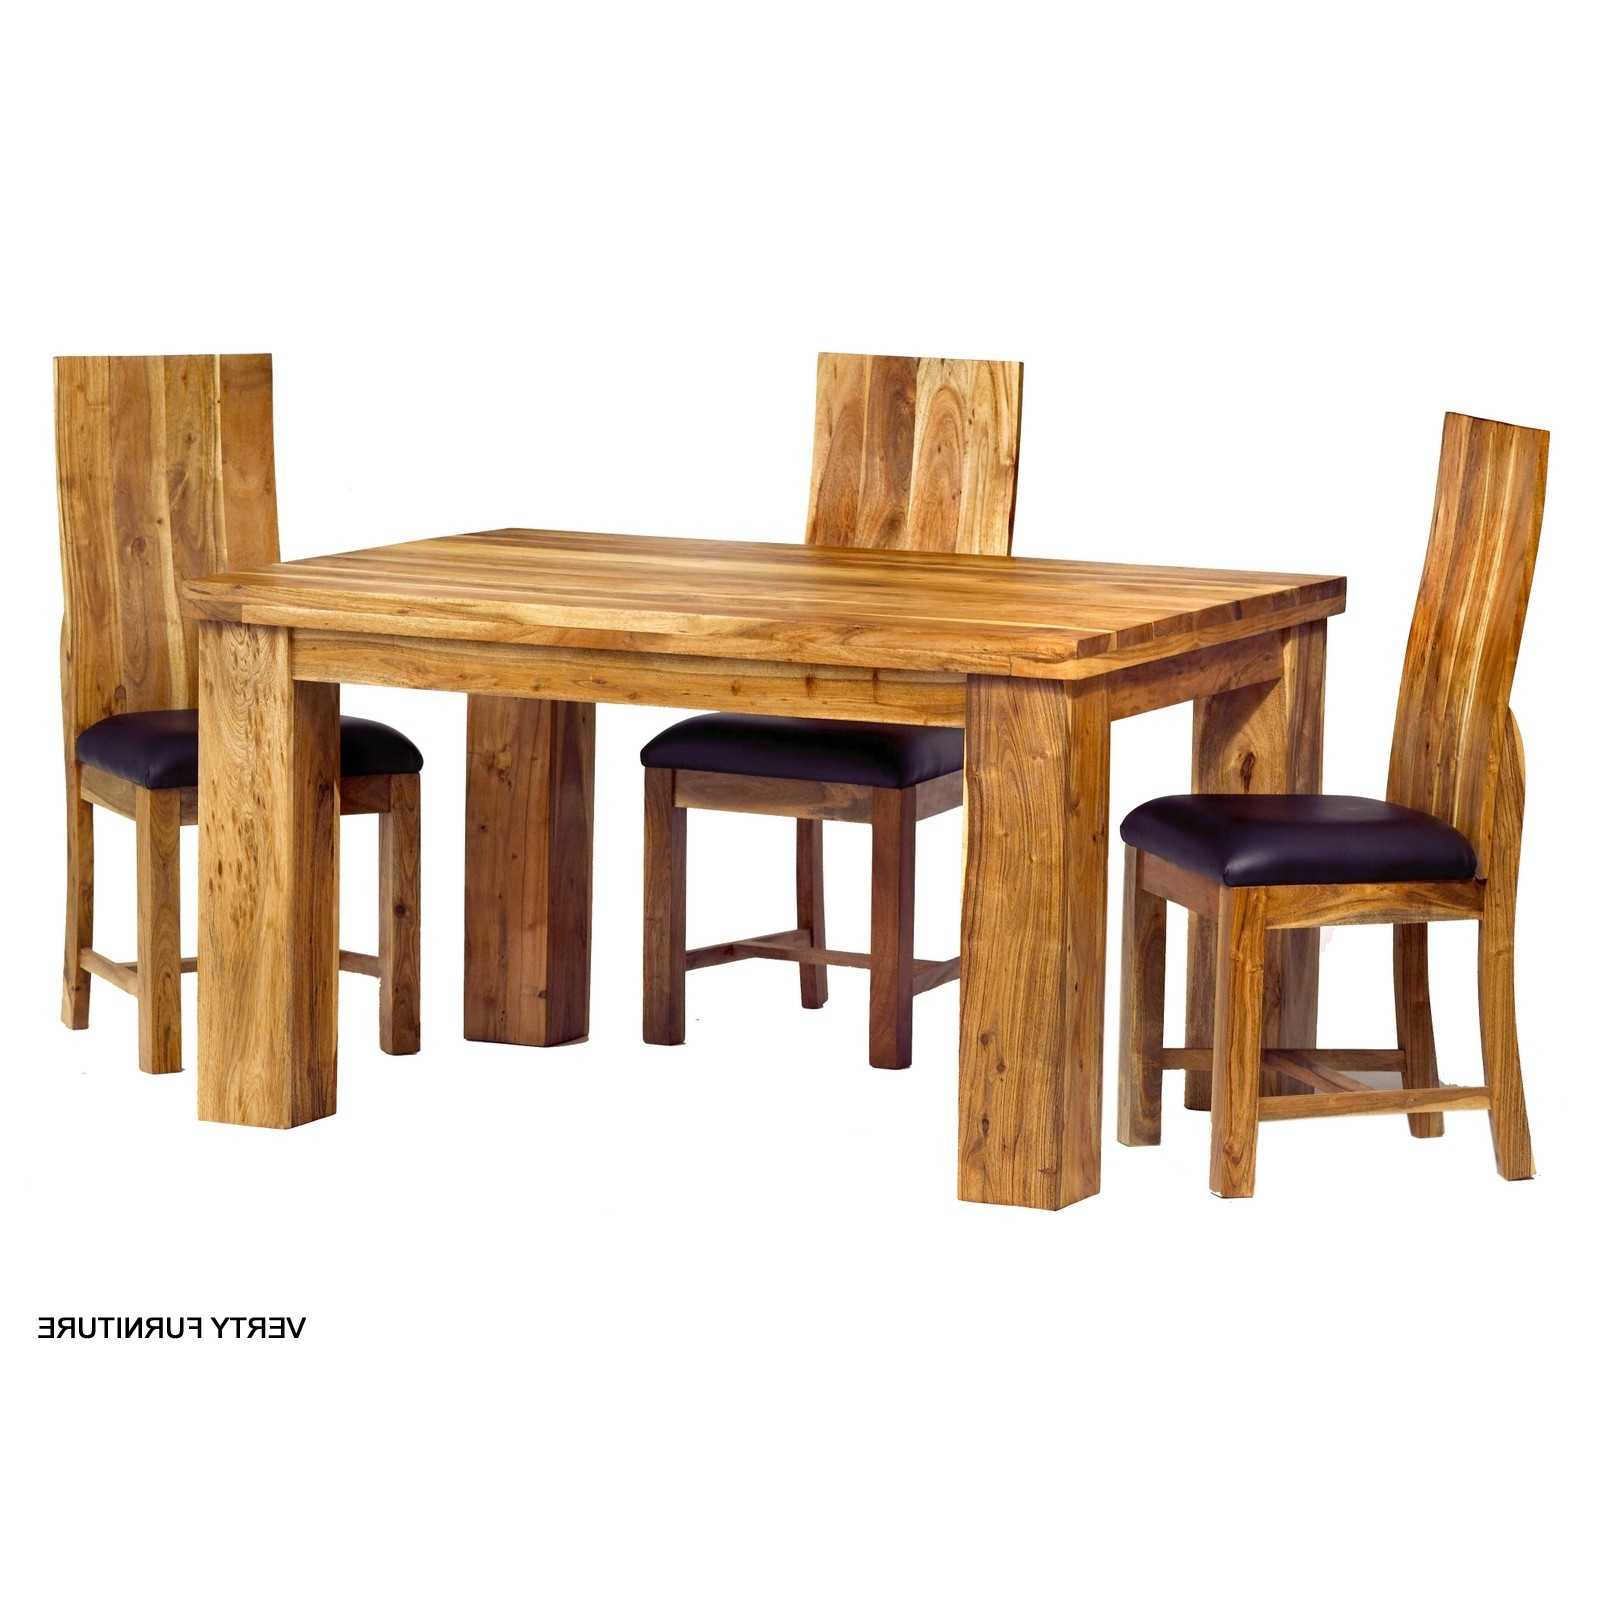 Current Indian Dining Room Furniture Intended For Acacia Dining Table – Small With 4 Chairs – Verty Indian Furniture (View 16 of 25)